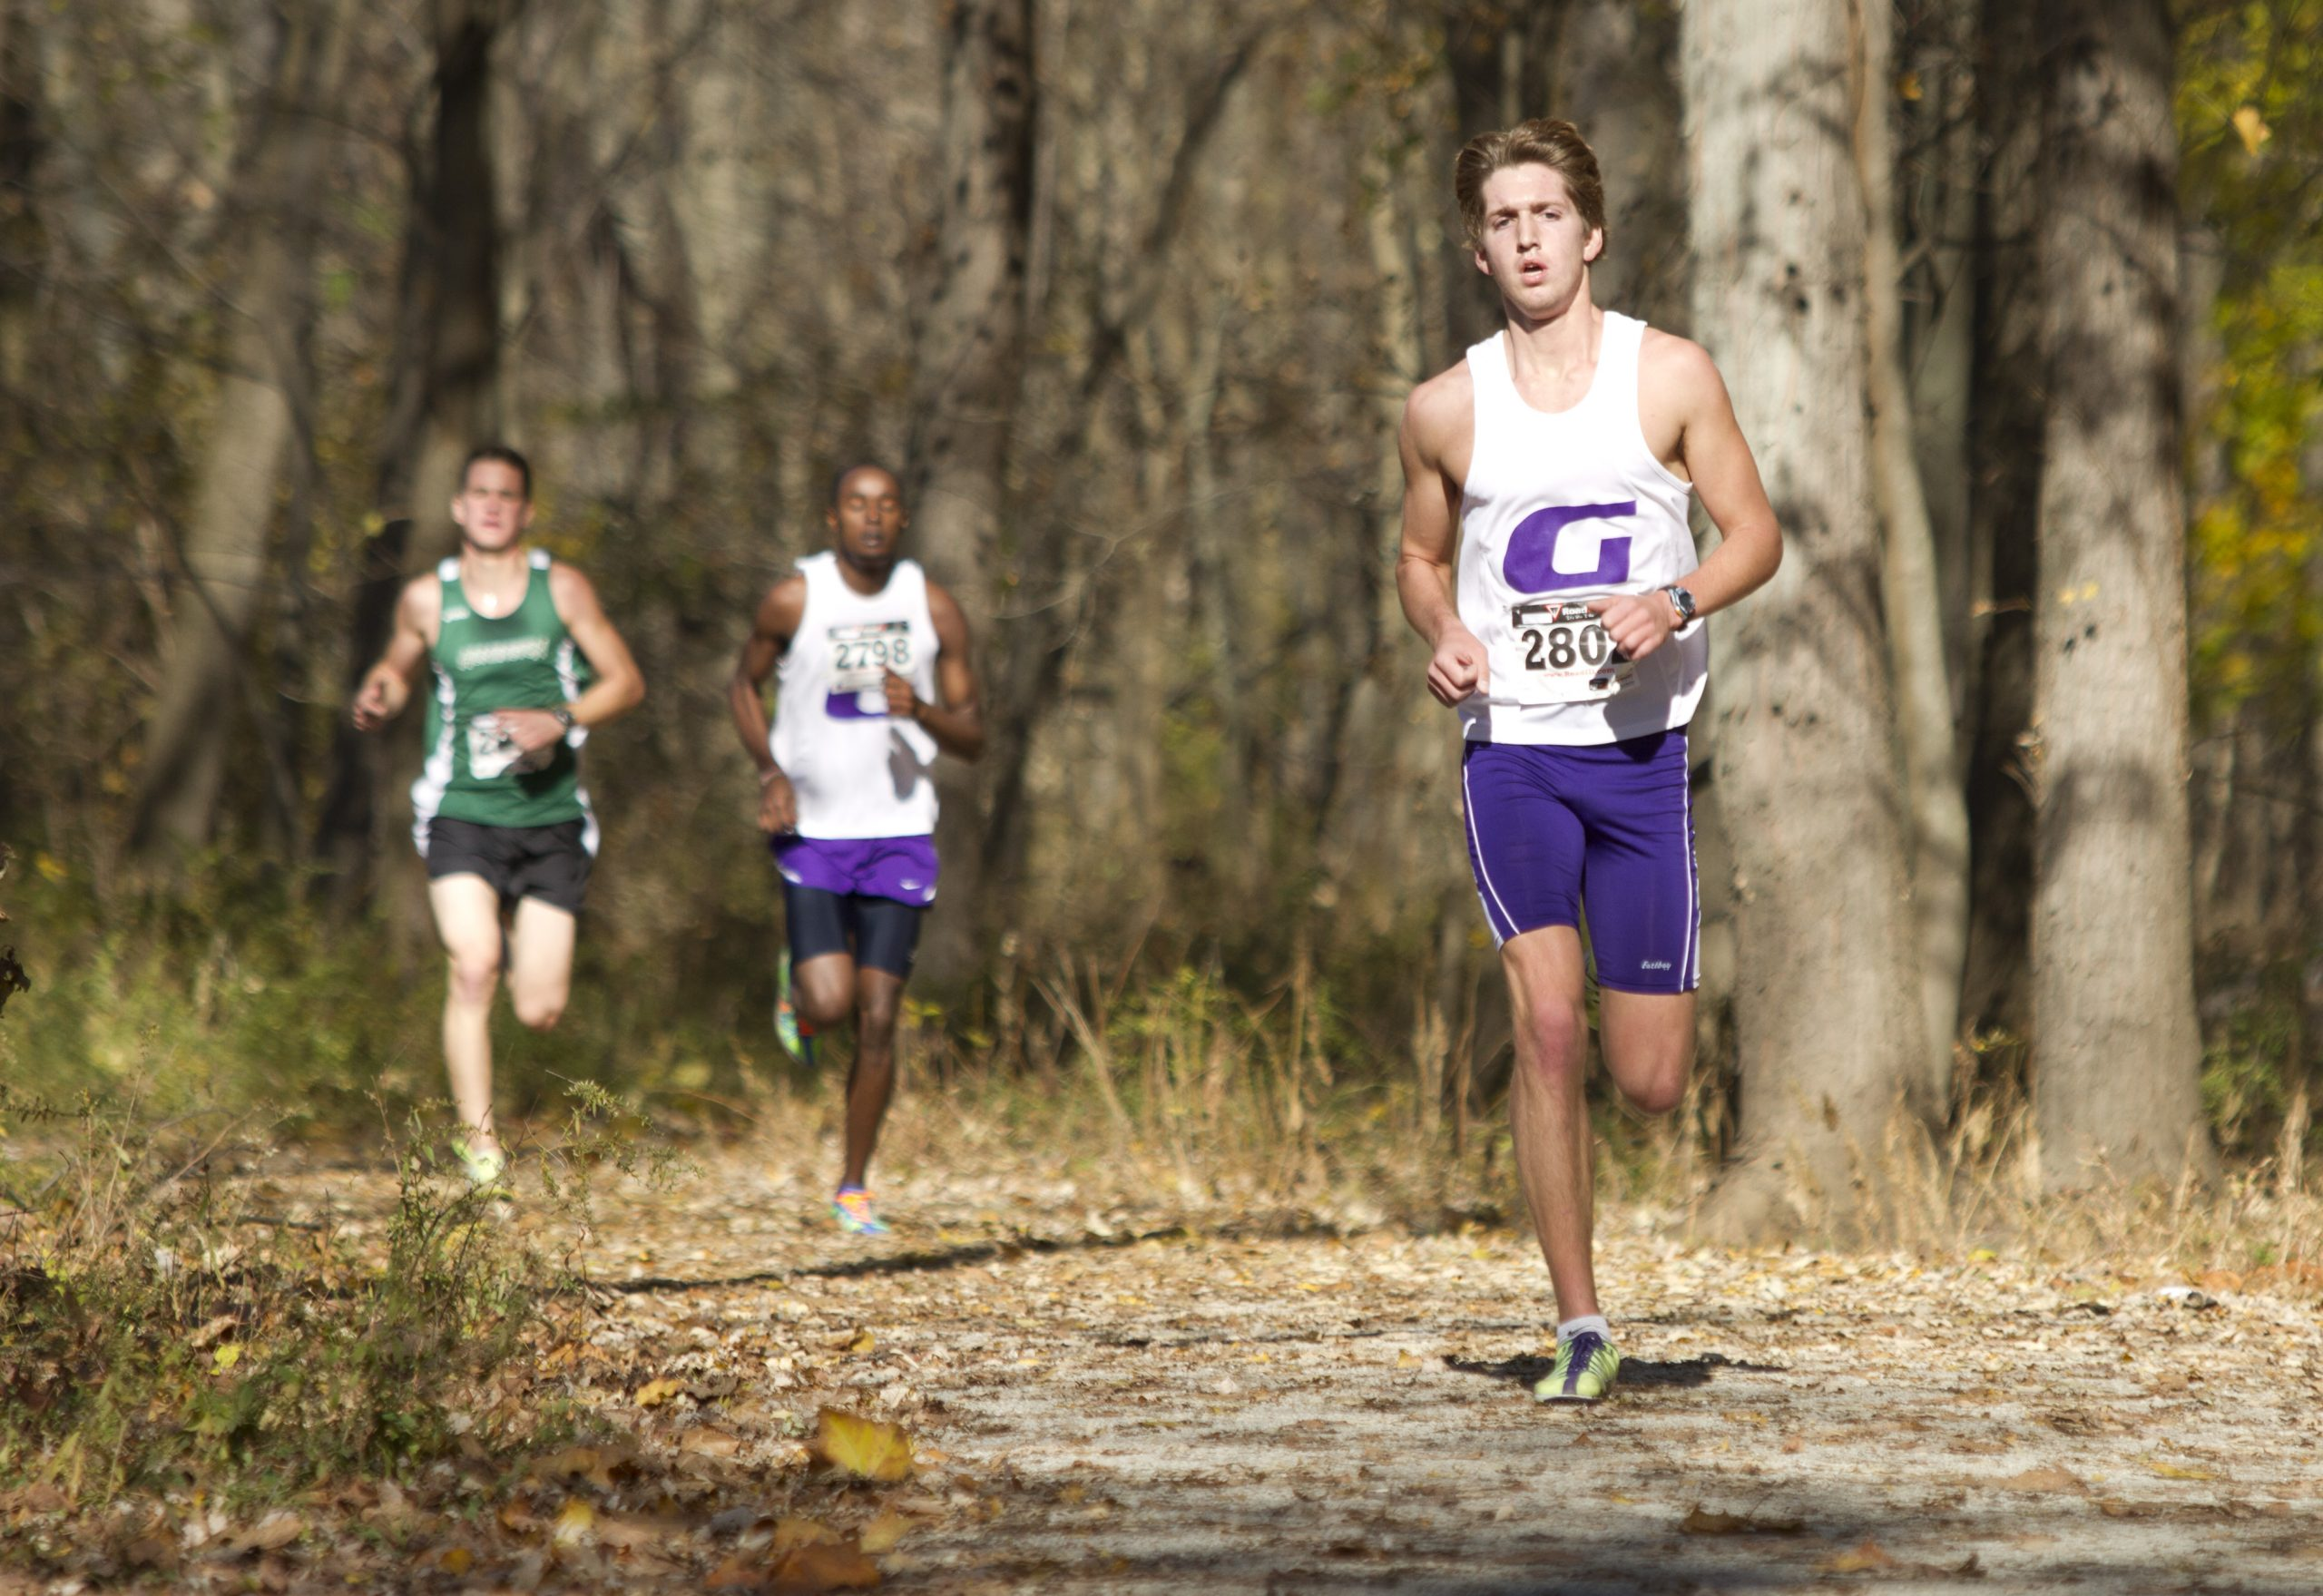 Two Goshen College runners race at a cross country meet. A runner from an opposing team races against them through the woods